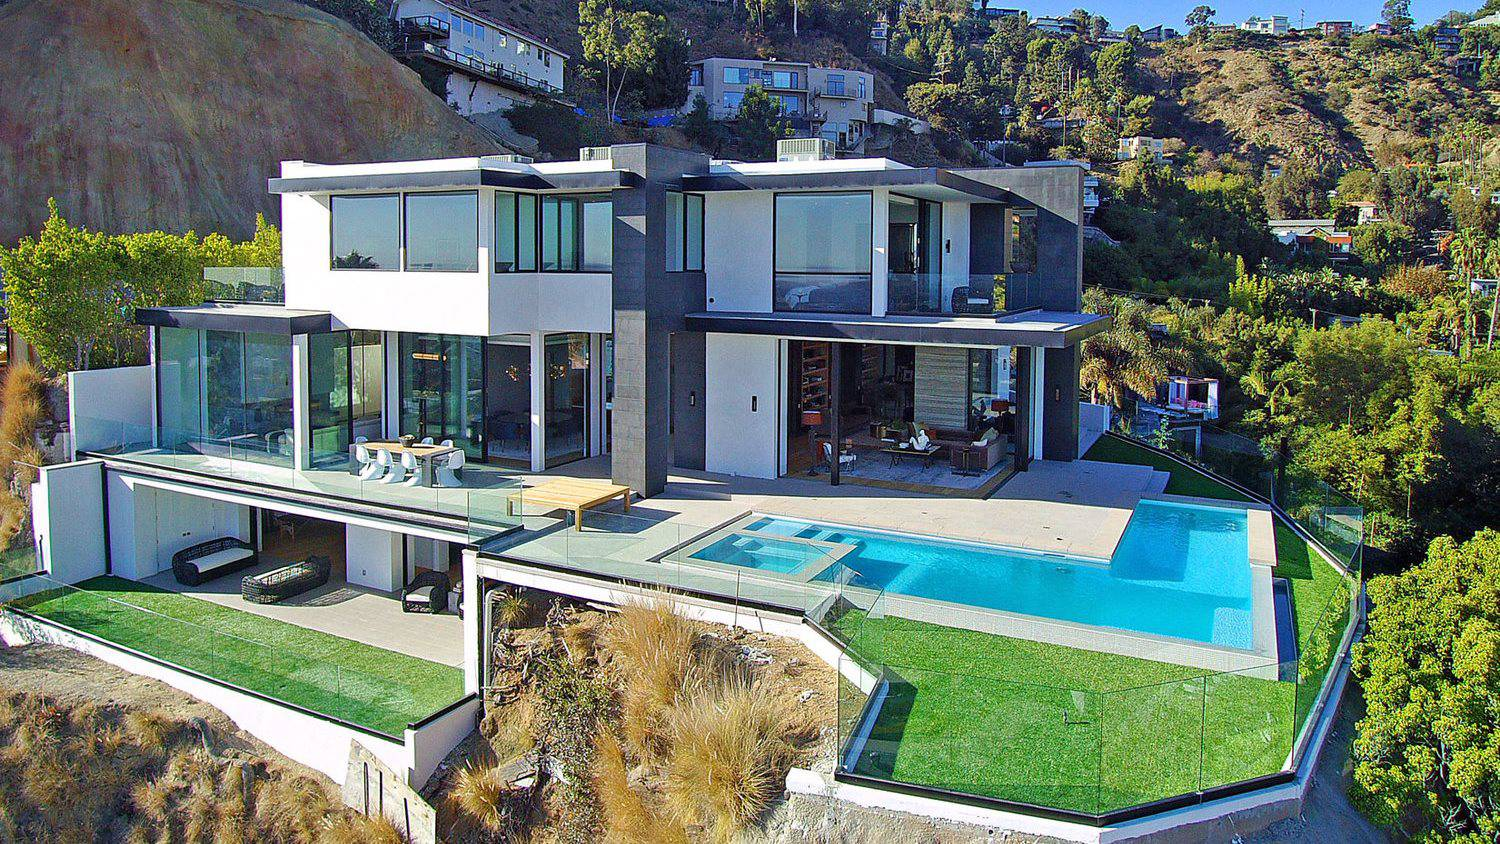 Sunset View Modern Home in Hollywood Hills by Studio Tim Campbell